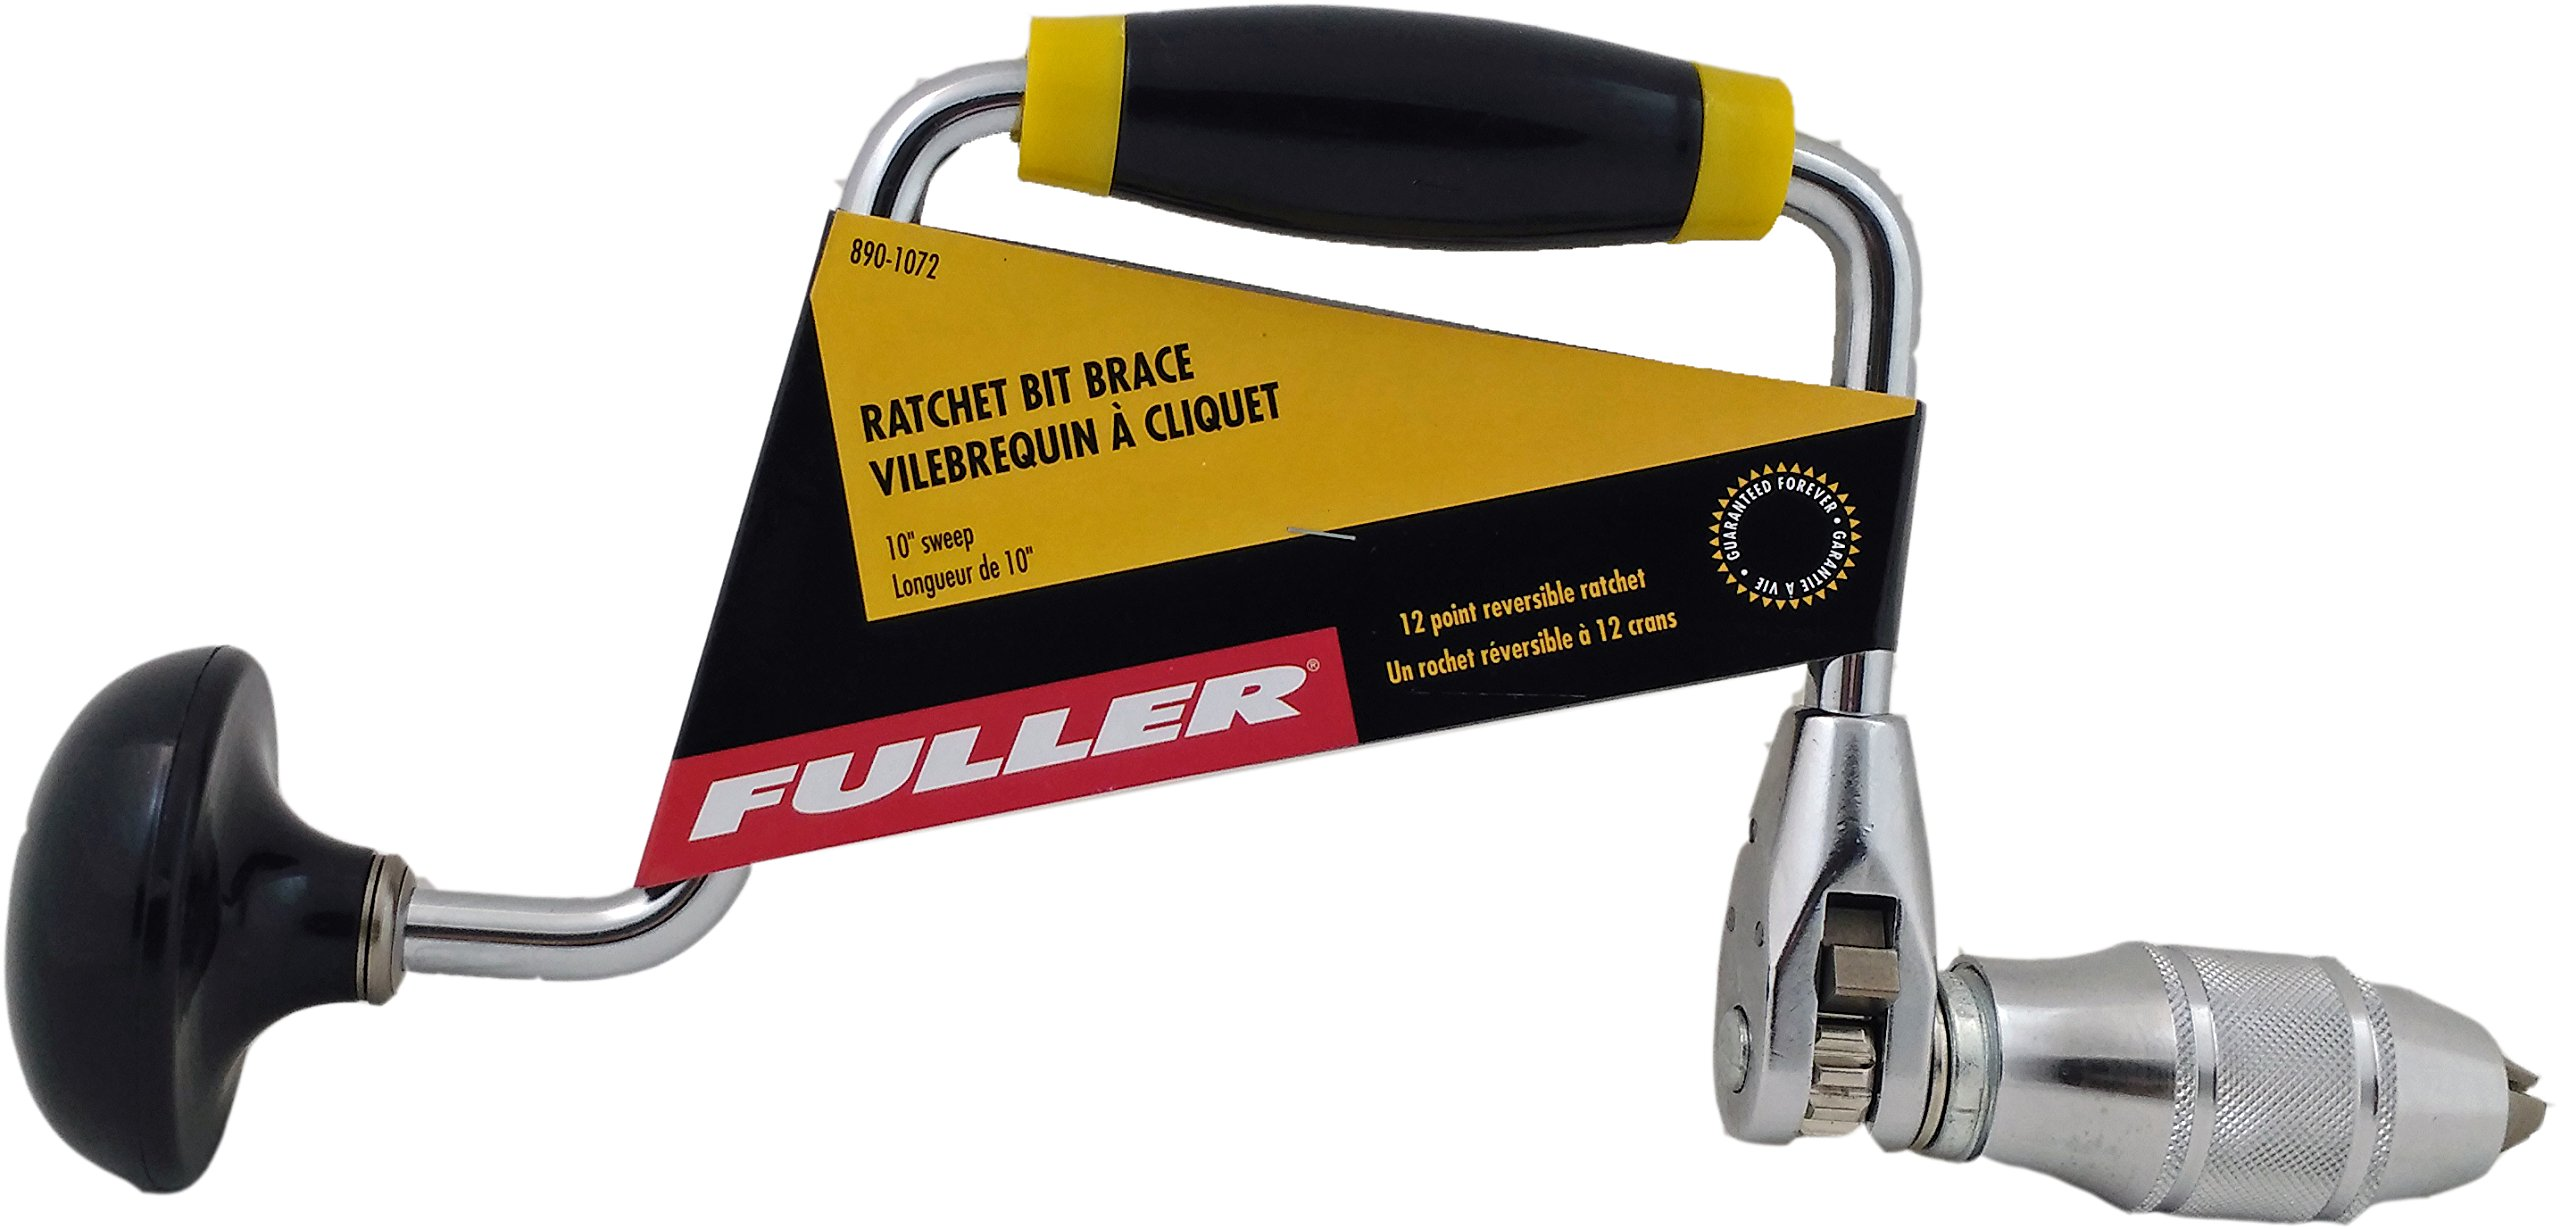 Fuller Tool 890-1072 12-Point Reversible Ratchet Bit Brace Hand Drill with 4-Jaw Chuck